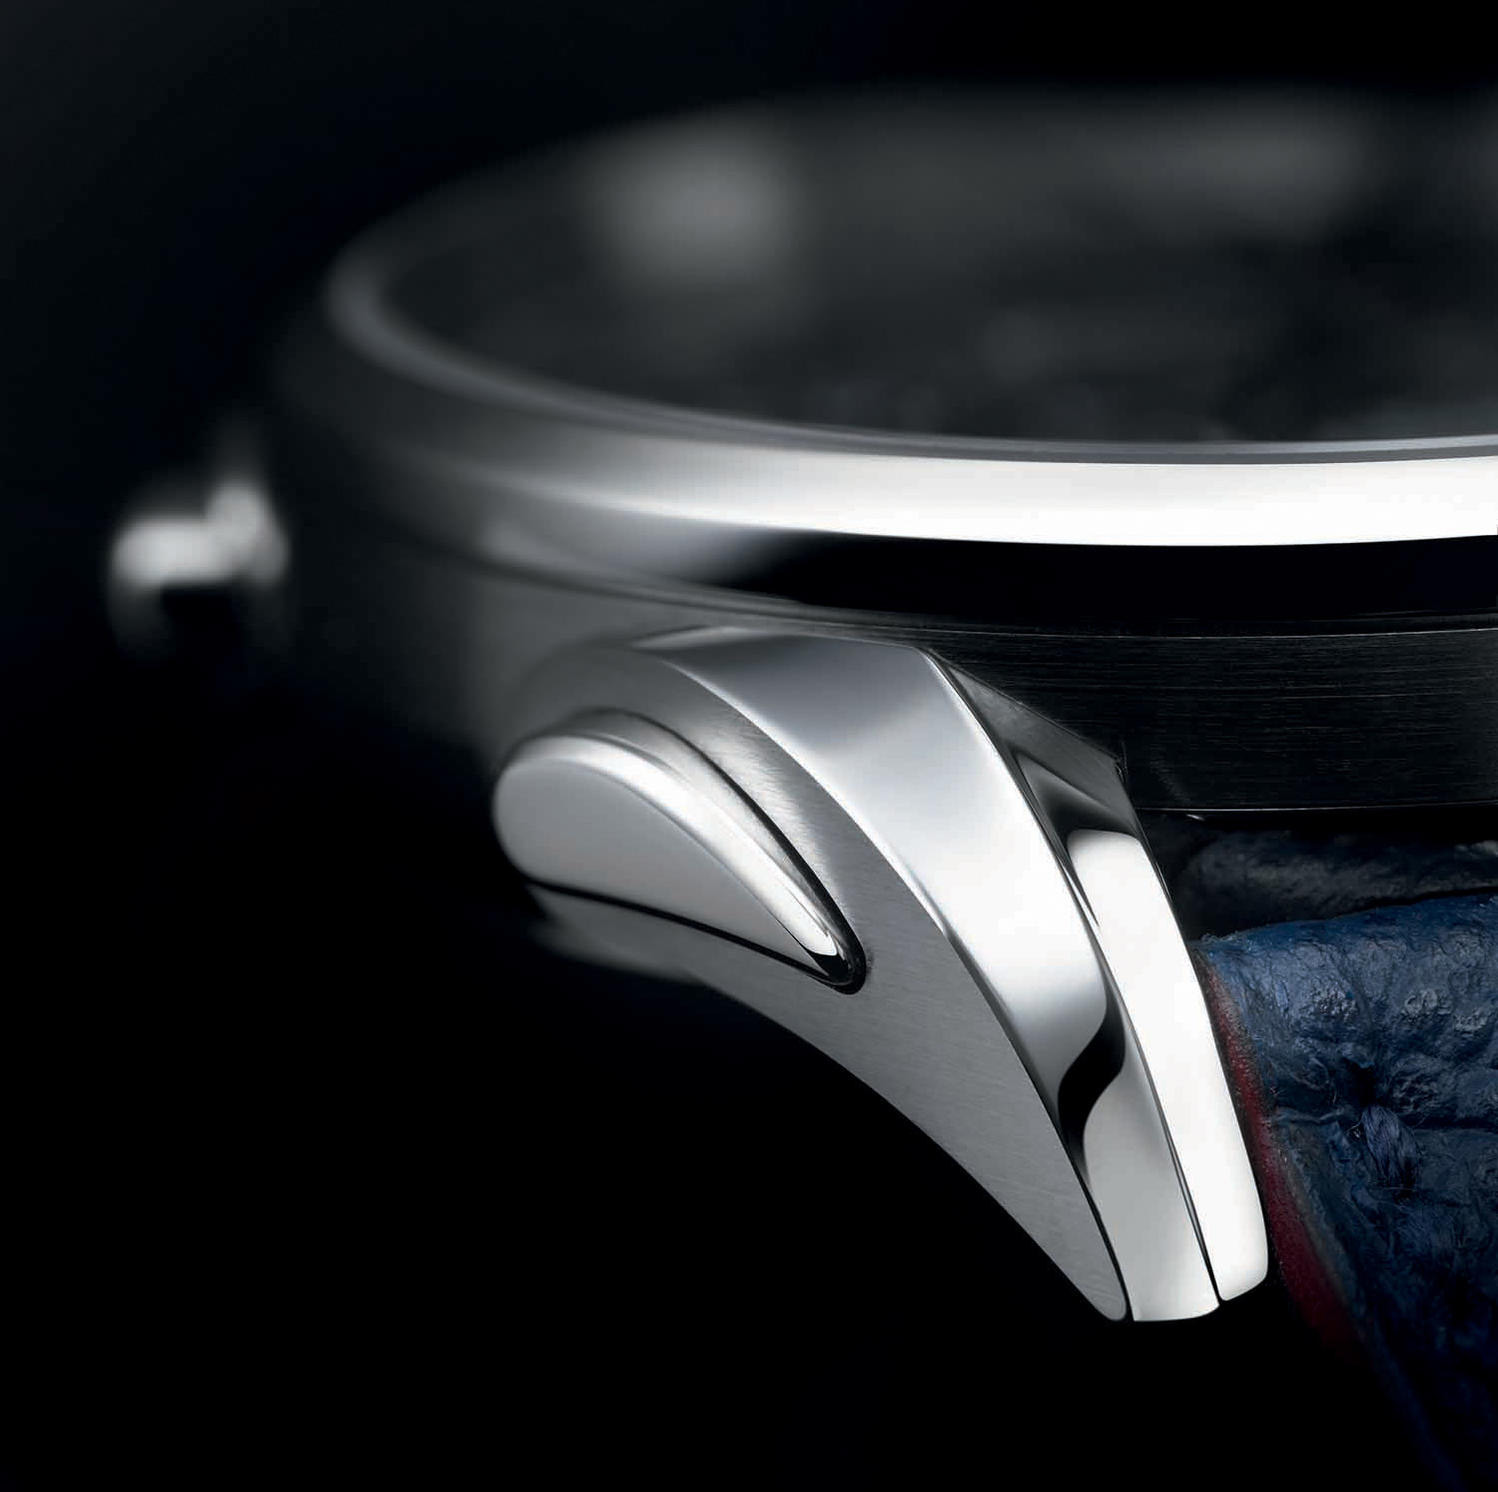 Parmigiani Fleurier Bugatti Aerolithe - The lugs mirror the rivet of the iconic car